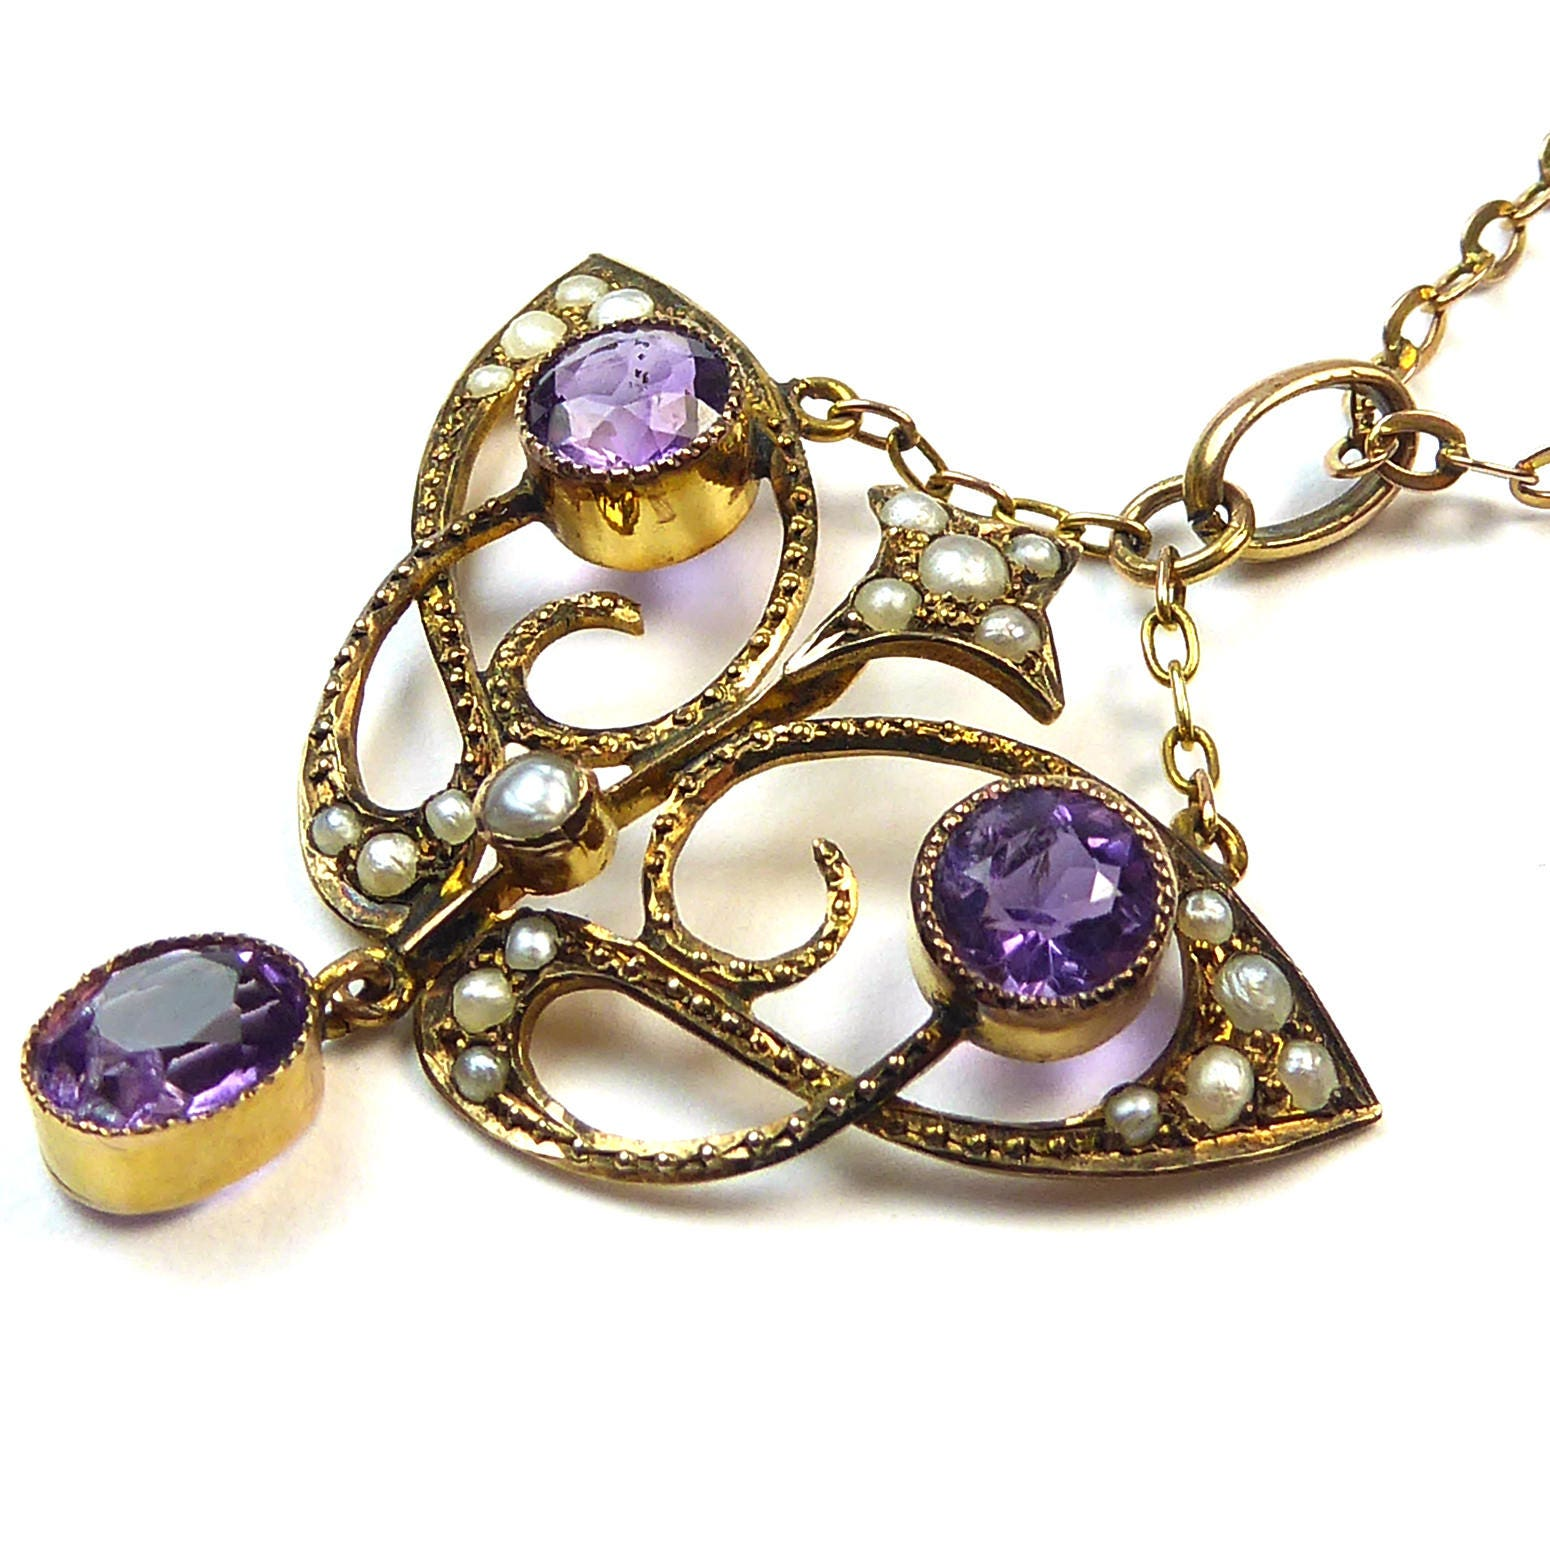 Antique Art Nouveau Amethyst and Pearl Pendant nj1036